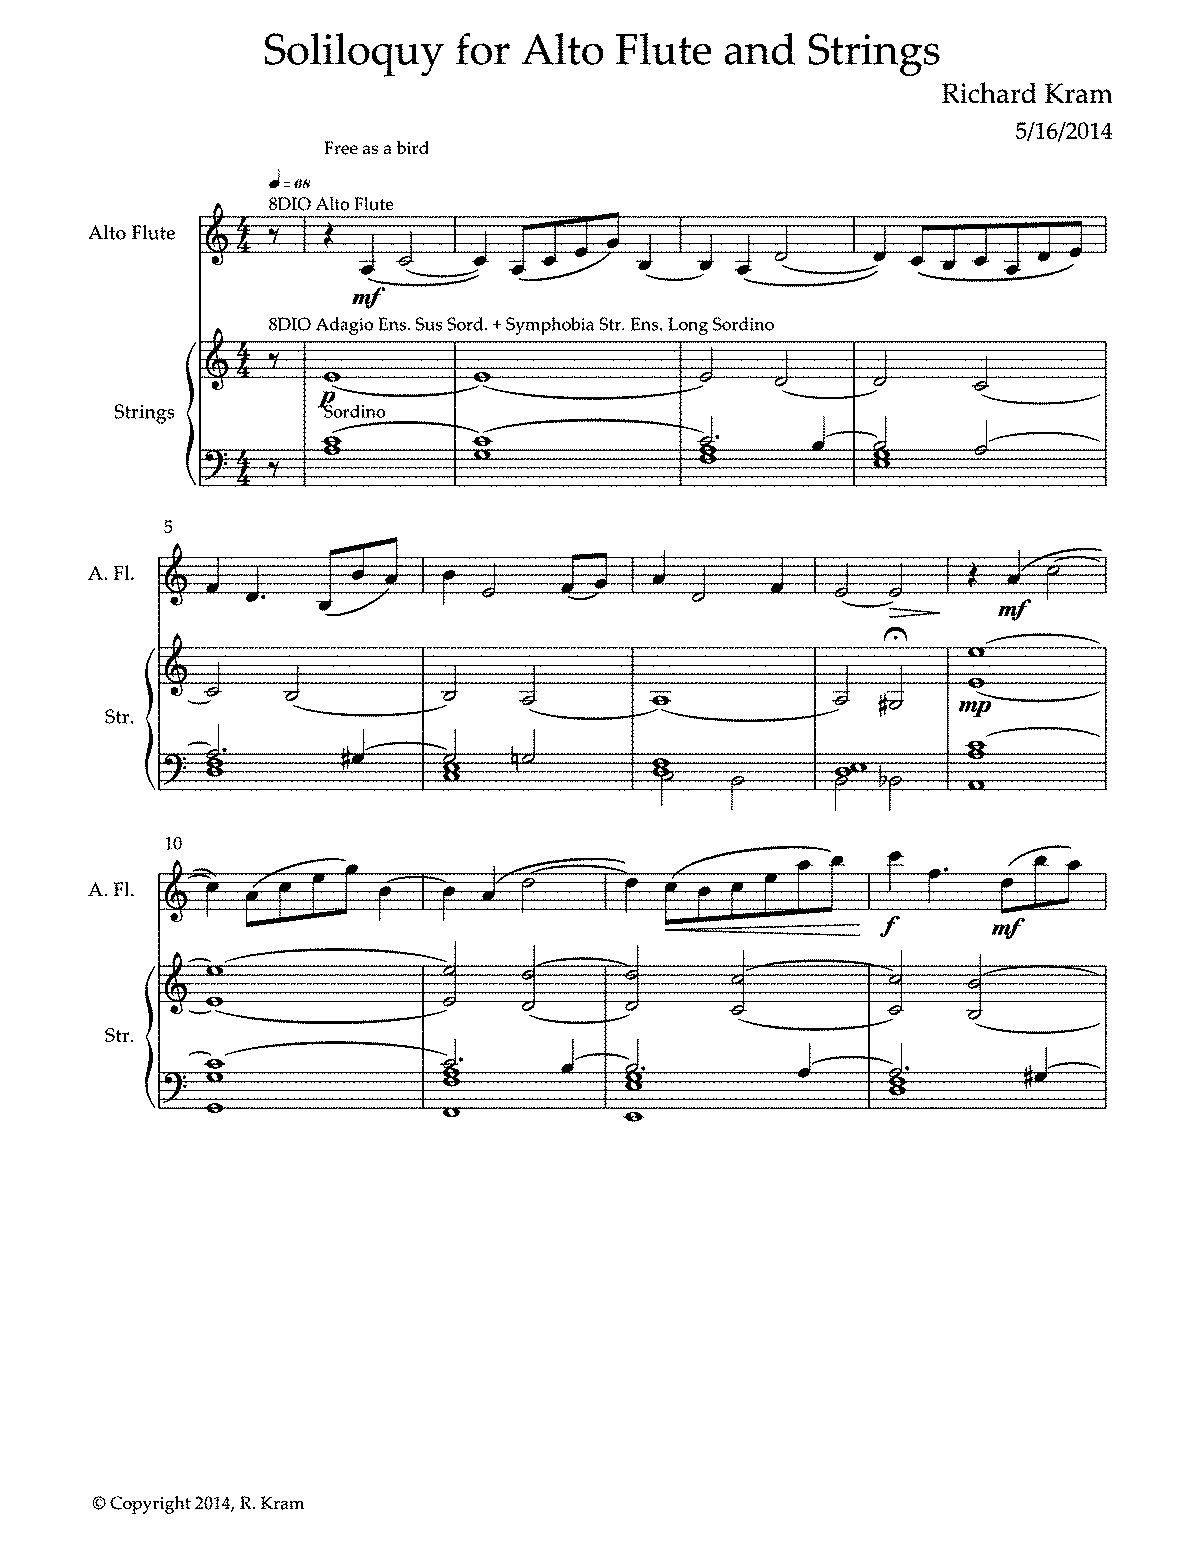 PMLP526481-Solliquoy for Alto Flute and Strings.pdf